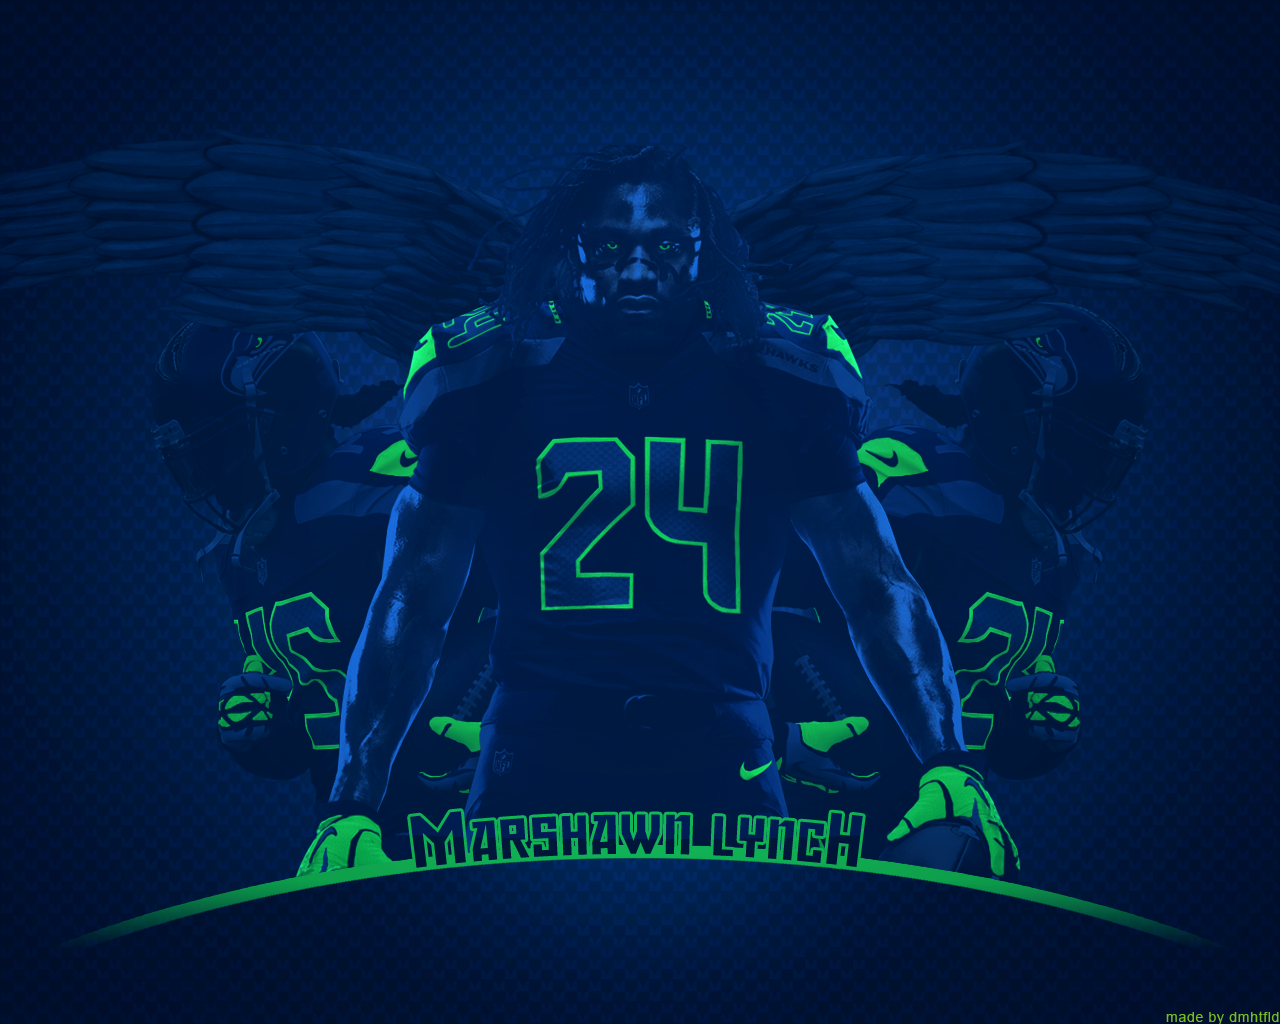 Marshawn Lynch Beast Mode Wallpaper Beast mode by dmhtfld